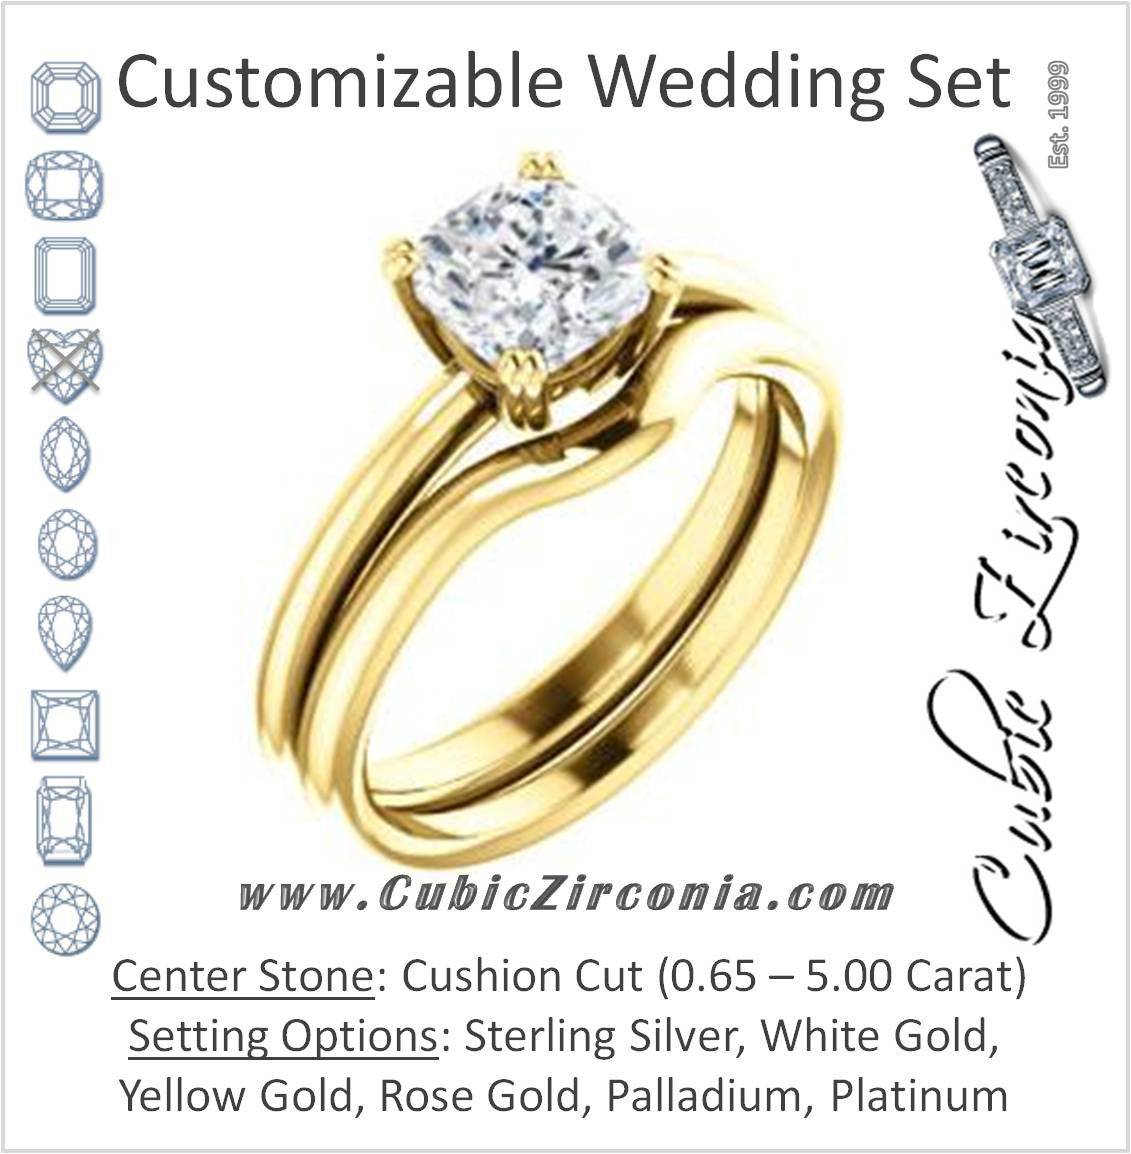 Cz Wedding Set Featuring The Venusia Engagement Ring Customizable Cushion Cut Solitaire With Thin Band